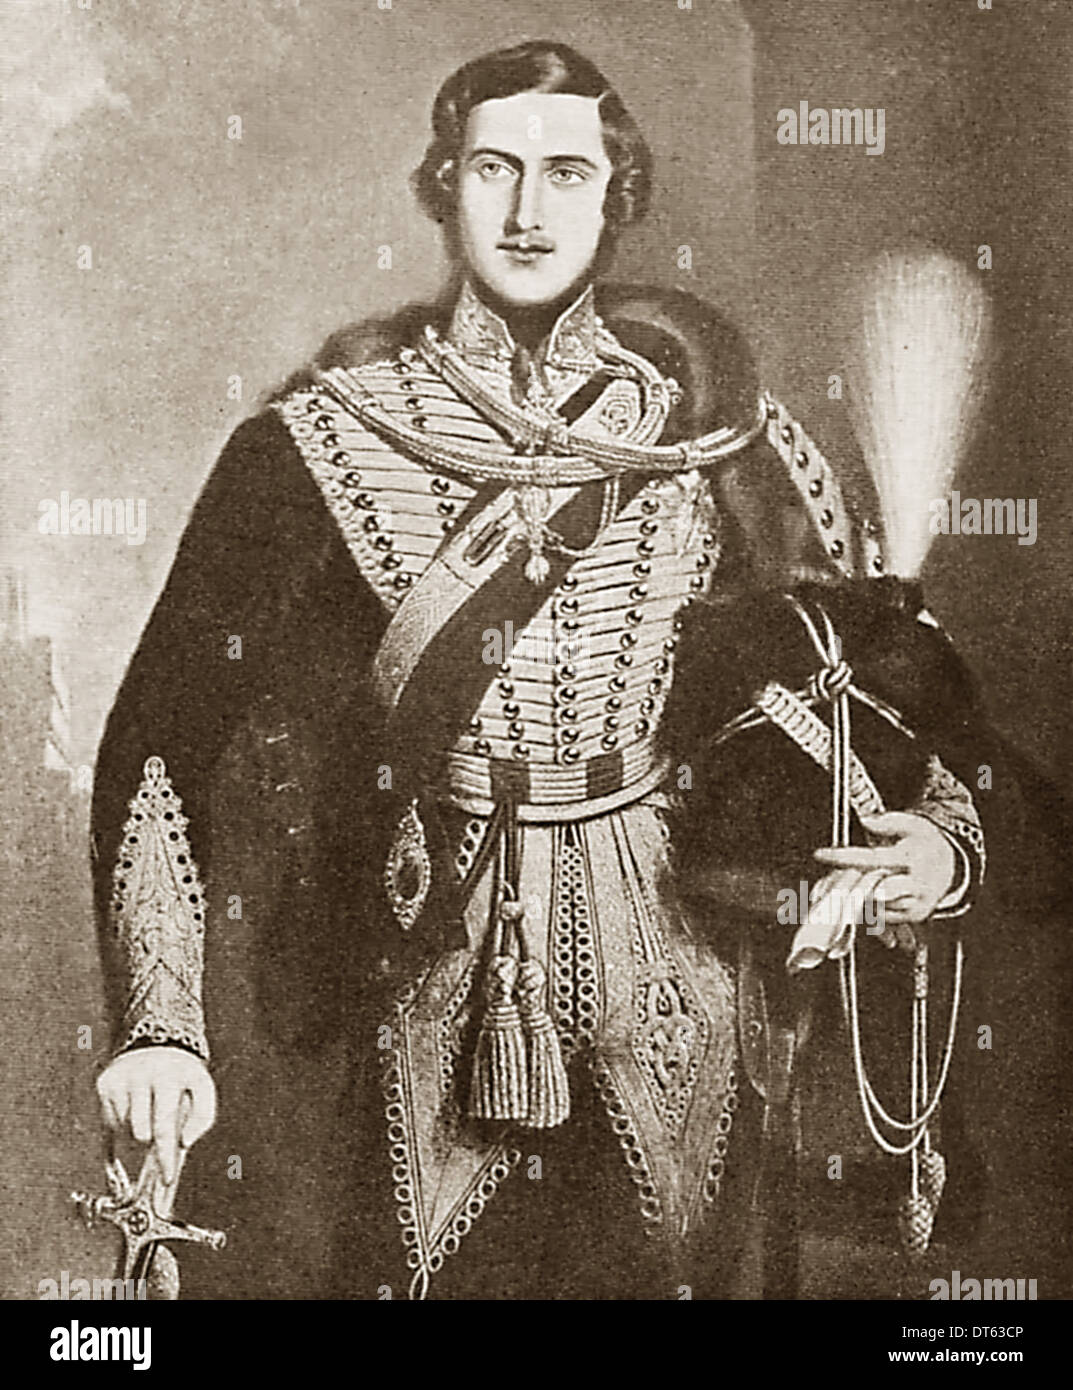 Prince Albert husband consort to Queen Victoria in 1840. From the archives of Press Portrait Service (formerly Press Portrait Service). - Stock Image